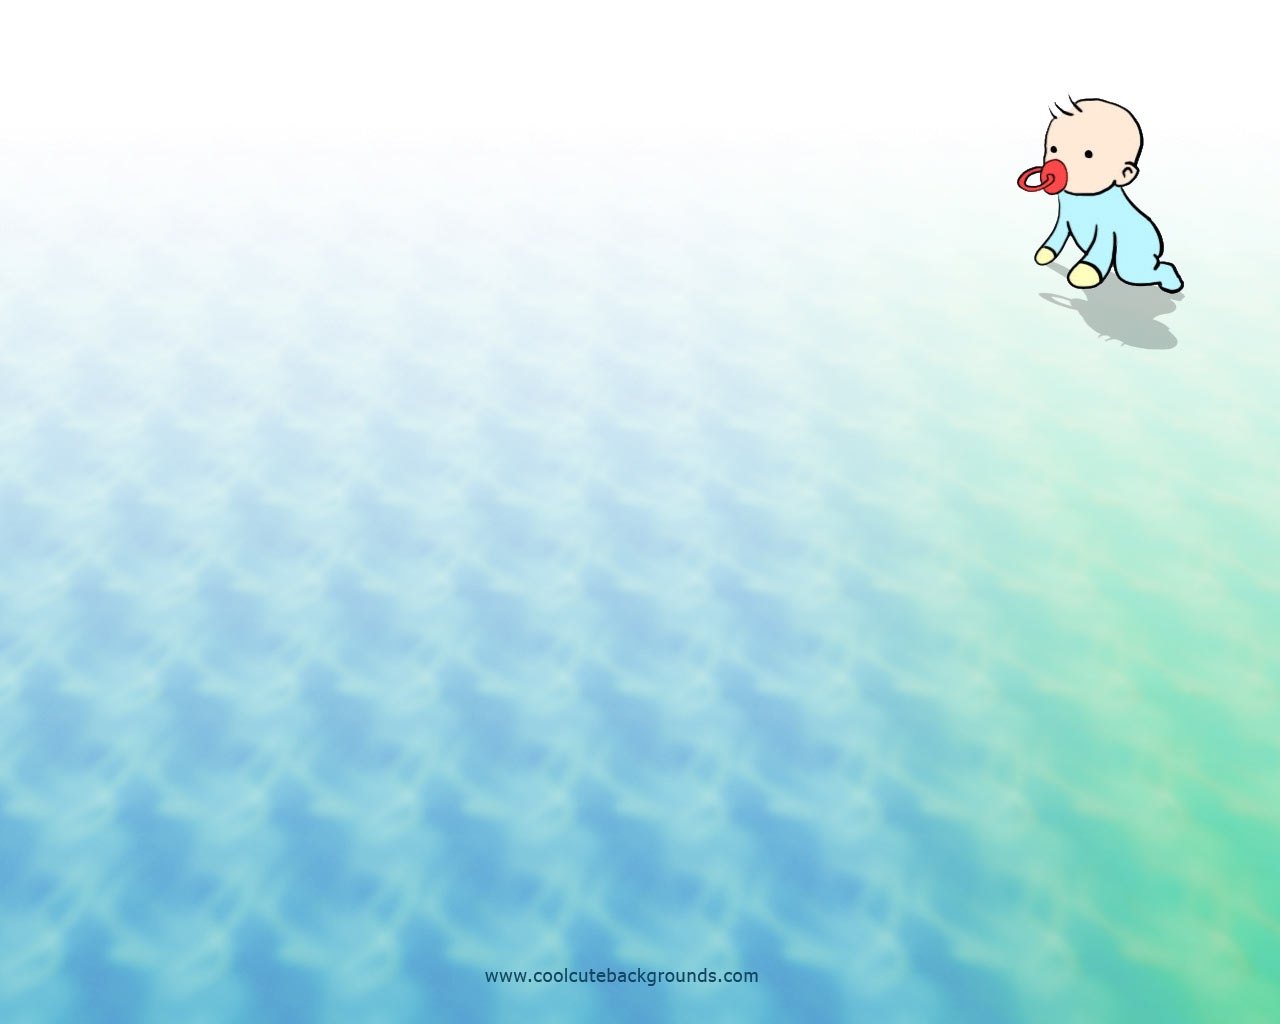 Cute Boy Doll Hd Wallpaper Sharing In Life Cute Background For Powerpoint